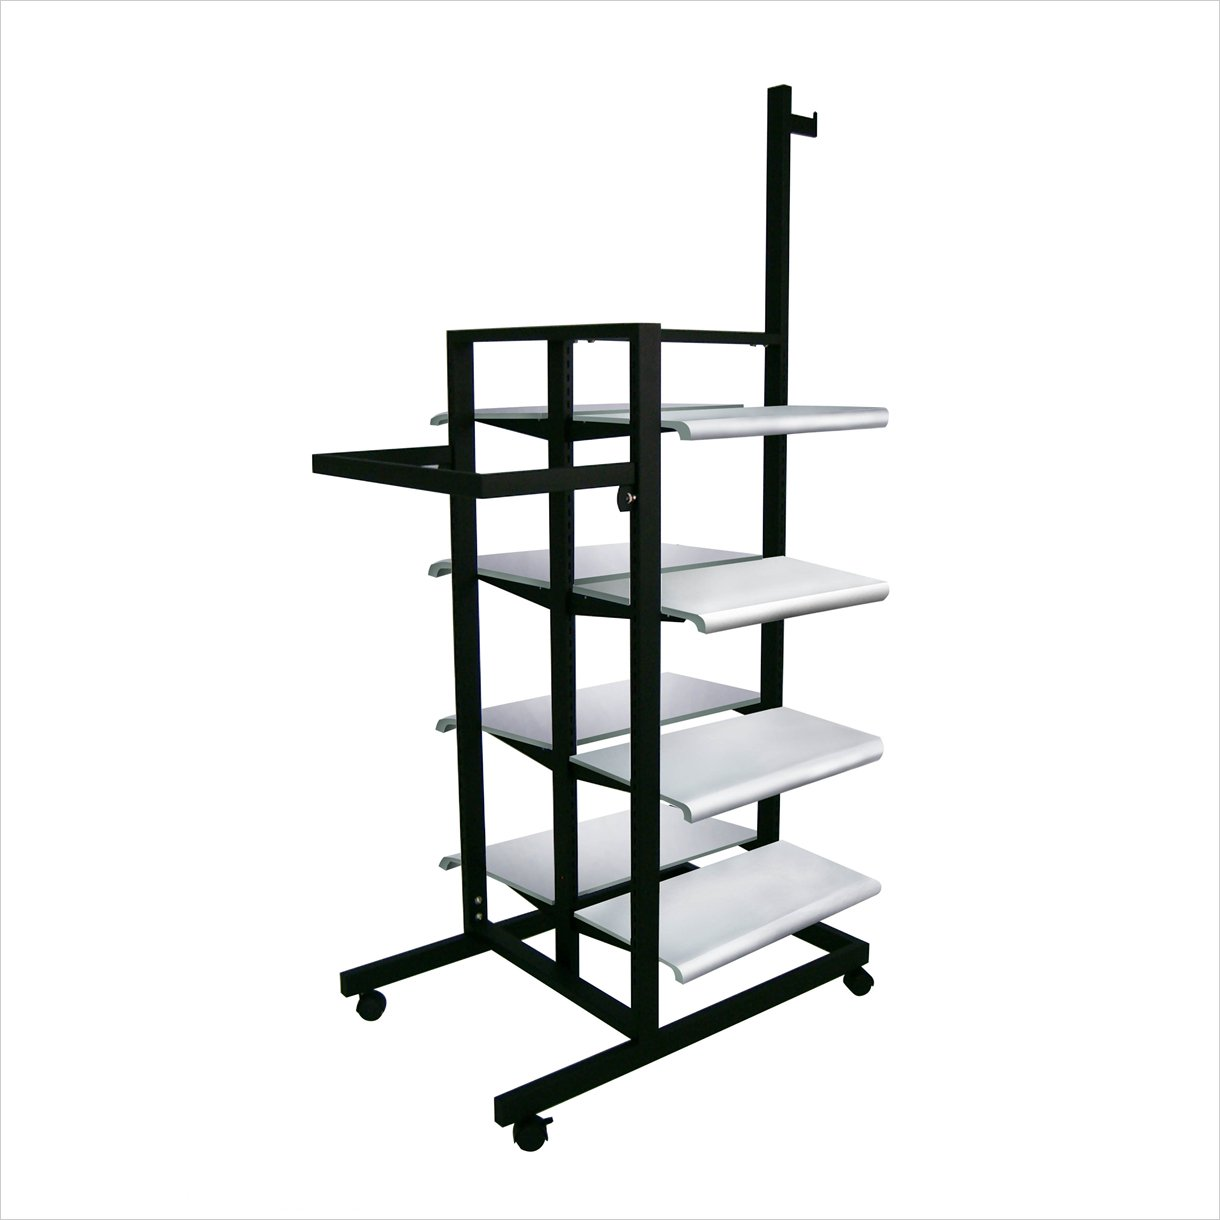 3 Sided Merchandiser 8 Shelves